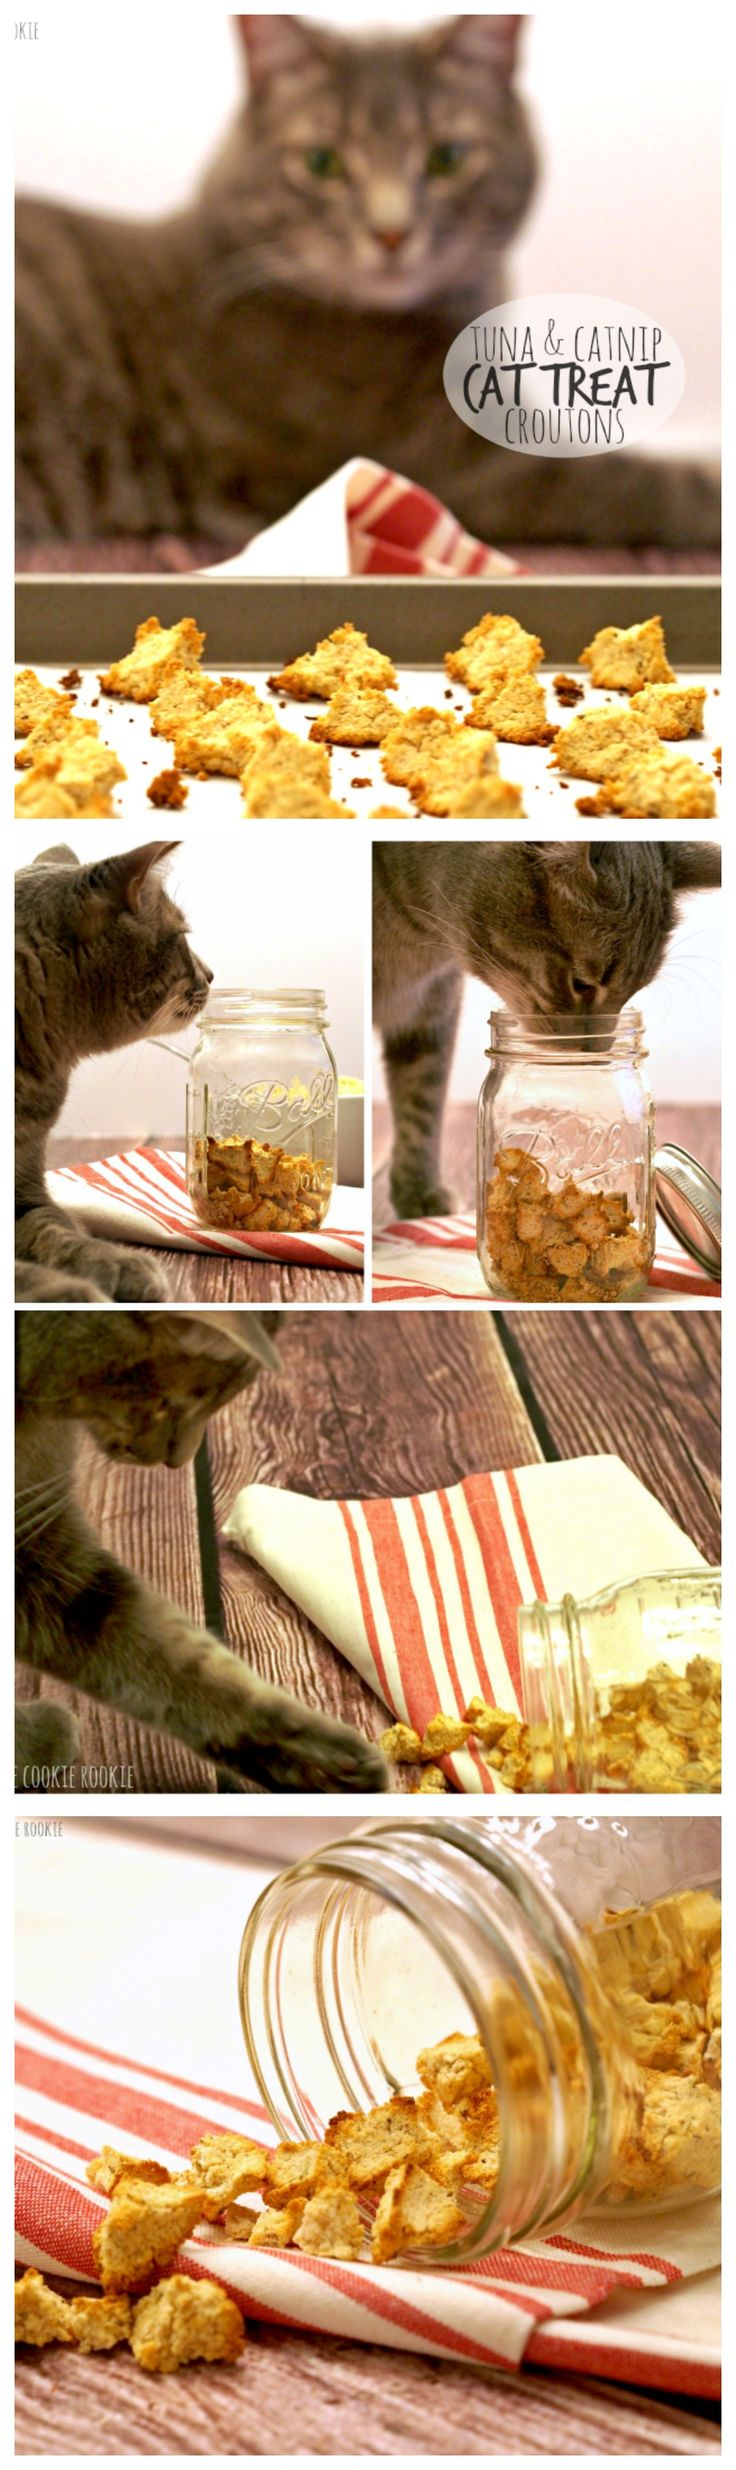 HOMEMADE CAT TREATS! Homemade Salmon & Catnip Cat Treat Croutons! My kitty loves these :) | http://www.thecookierookie.com/homemade-cat-treats/ |